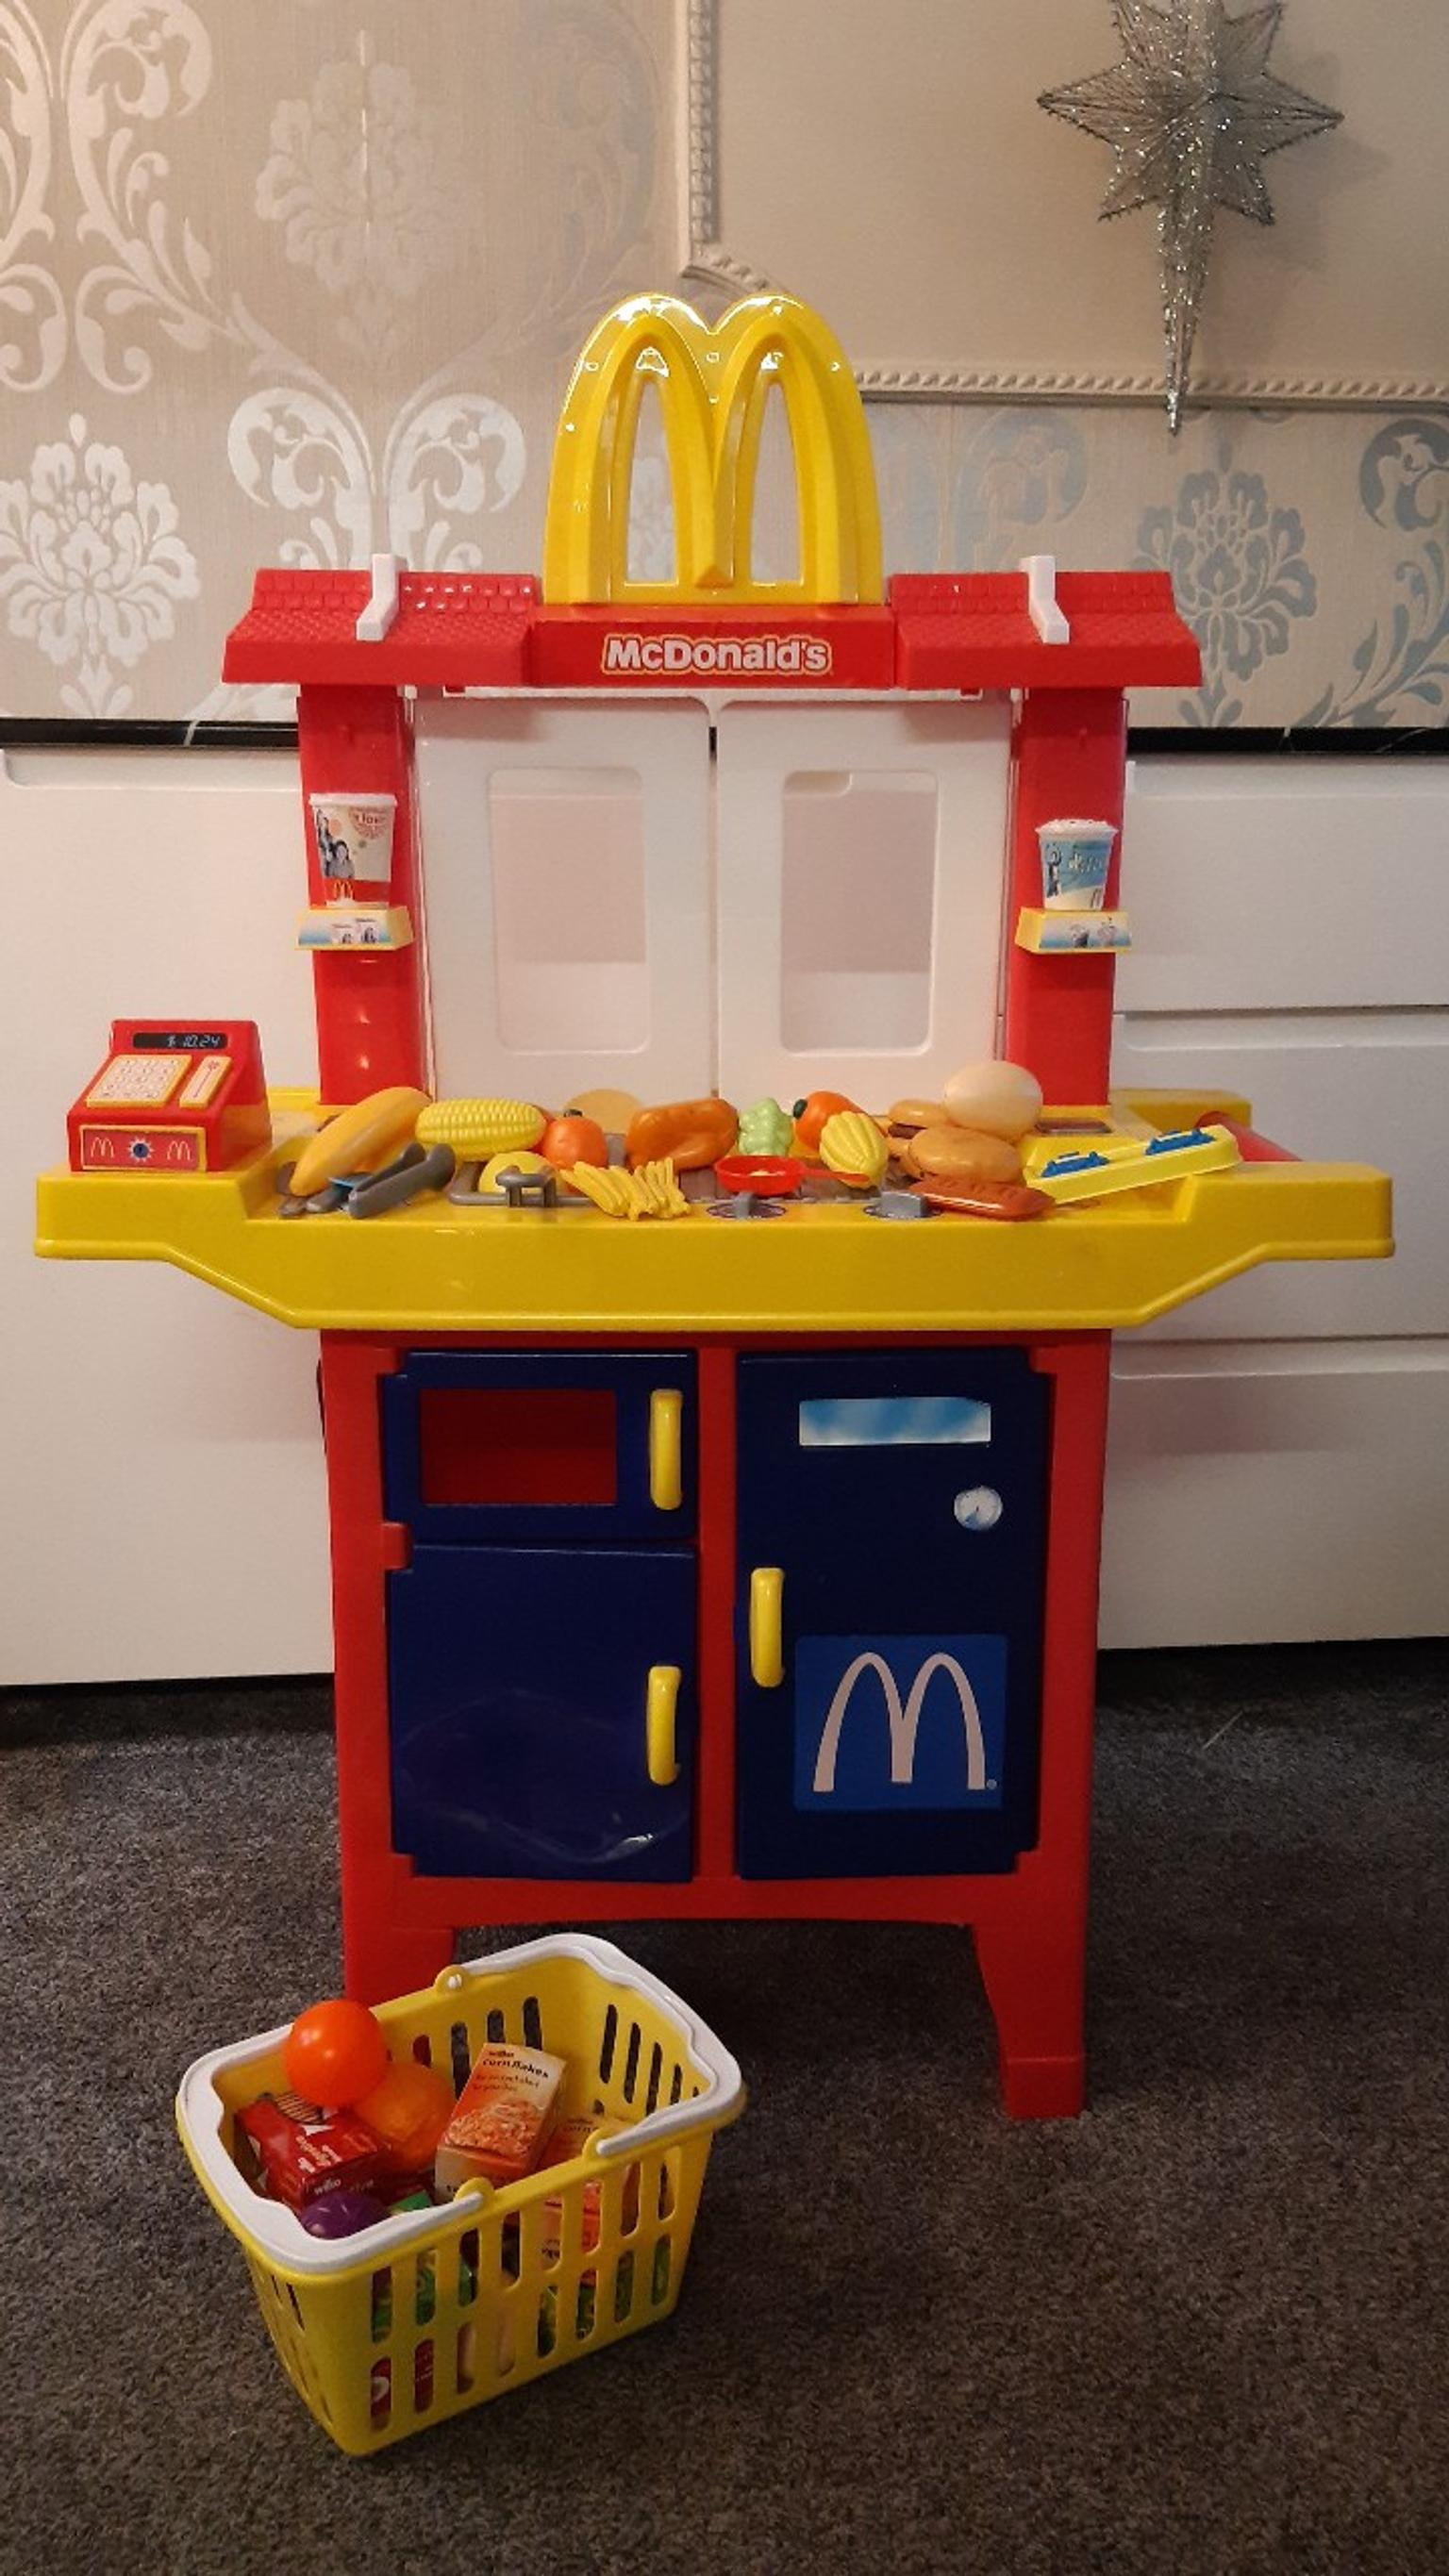 Mcdonalds Drive Thru in B64 Dudley for £20.00 for sale ...